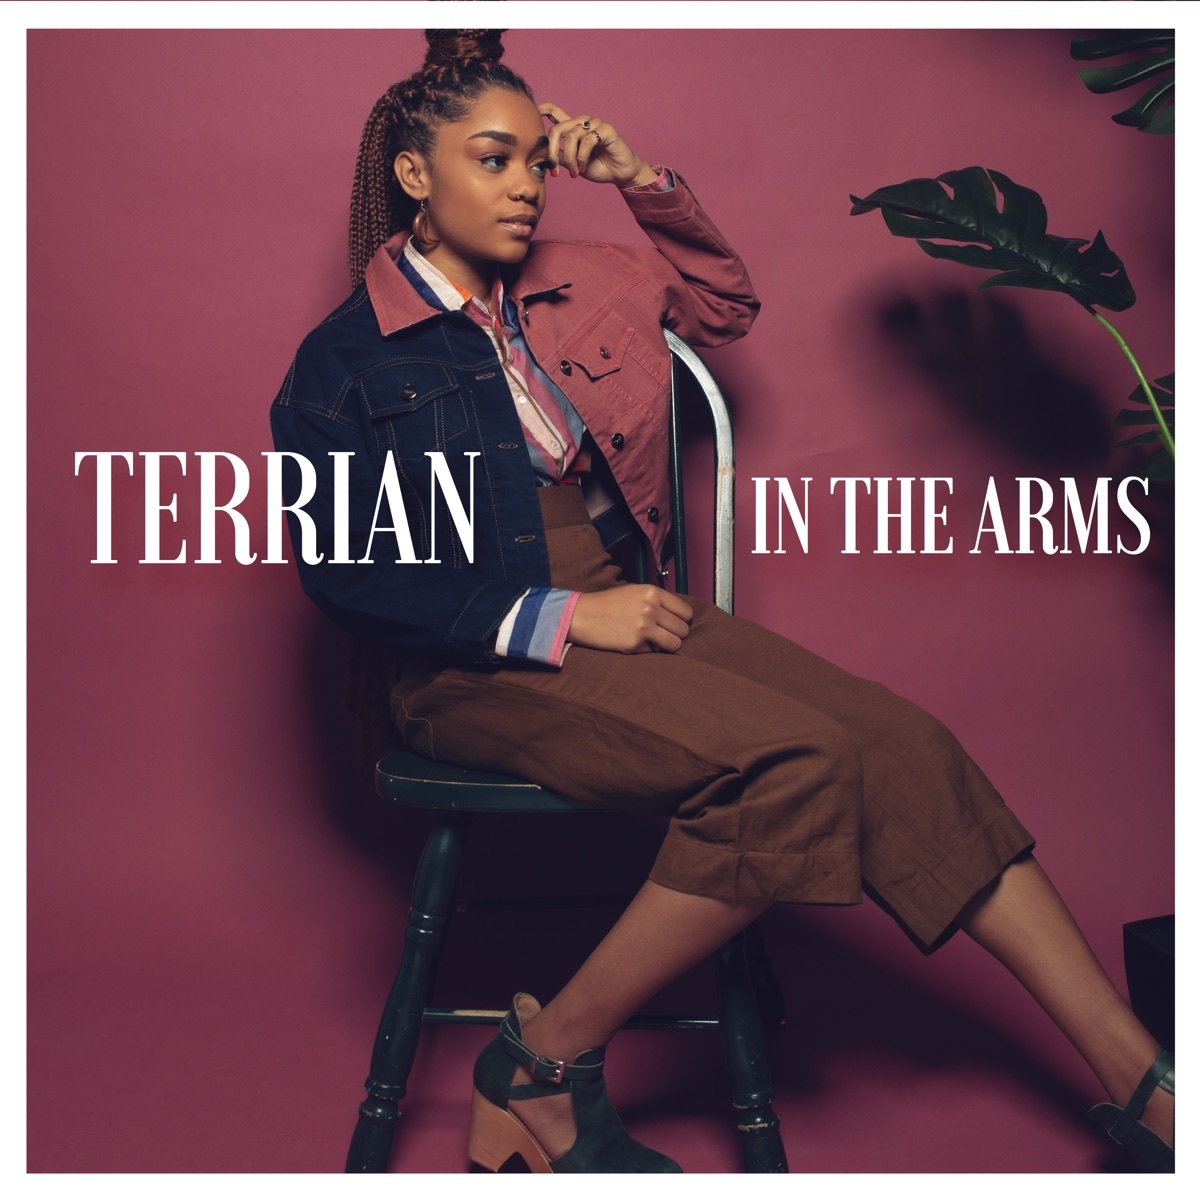 In The Arms (Single)